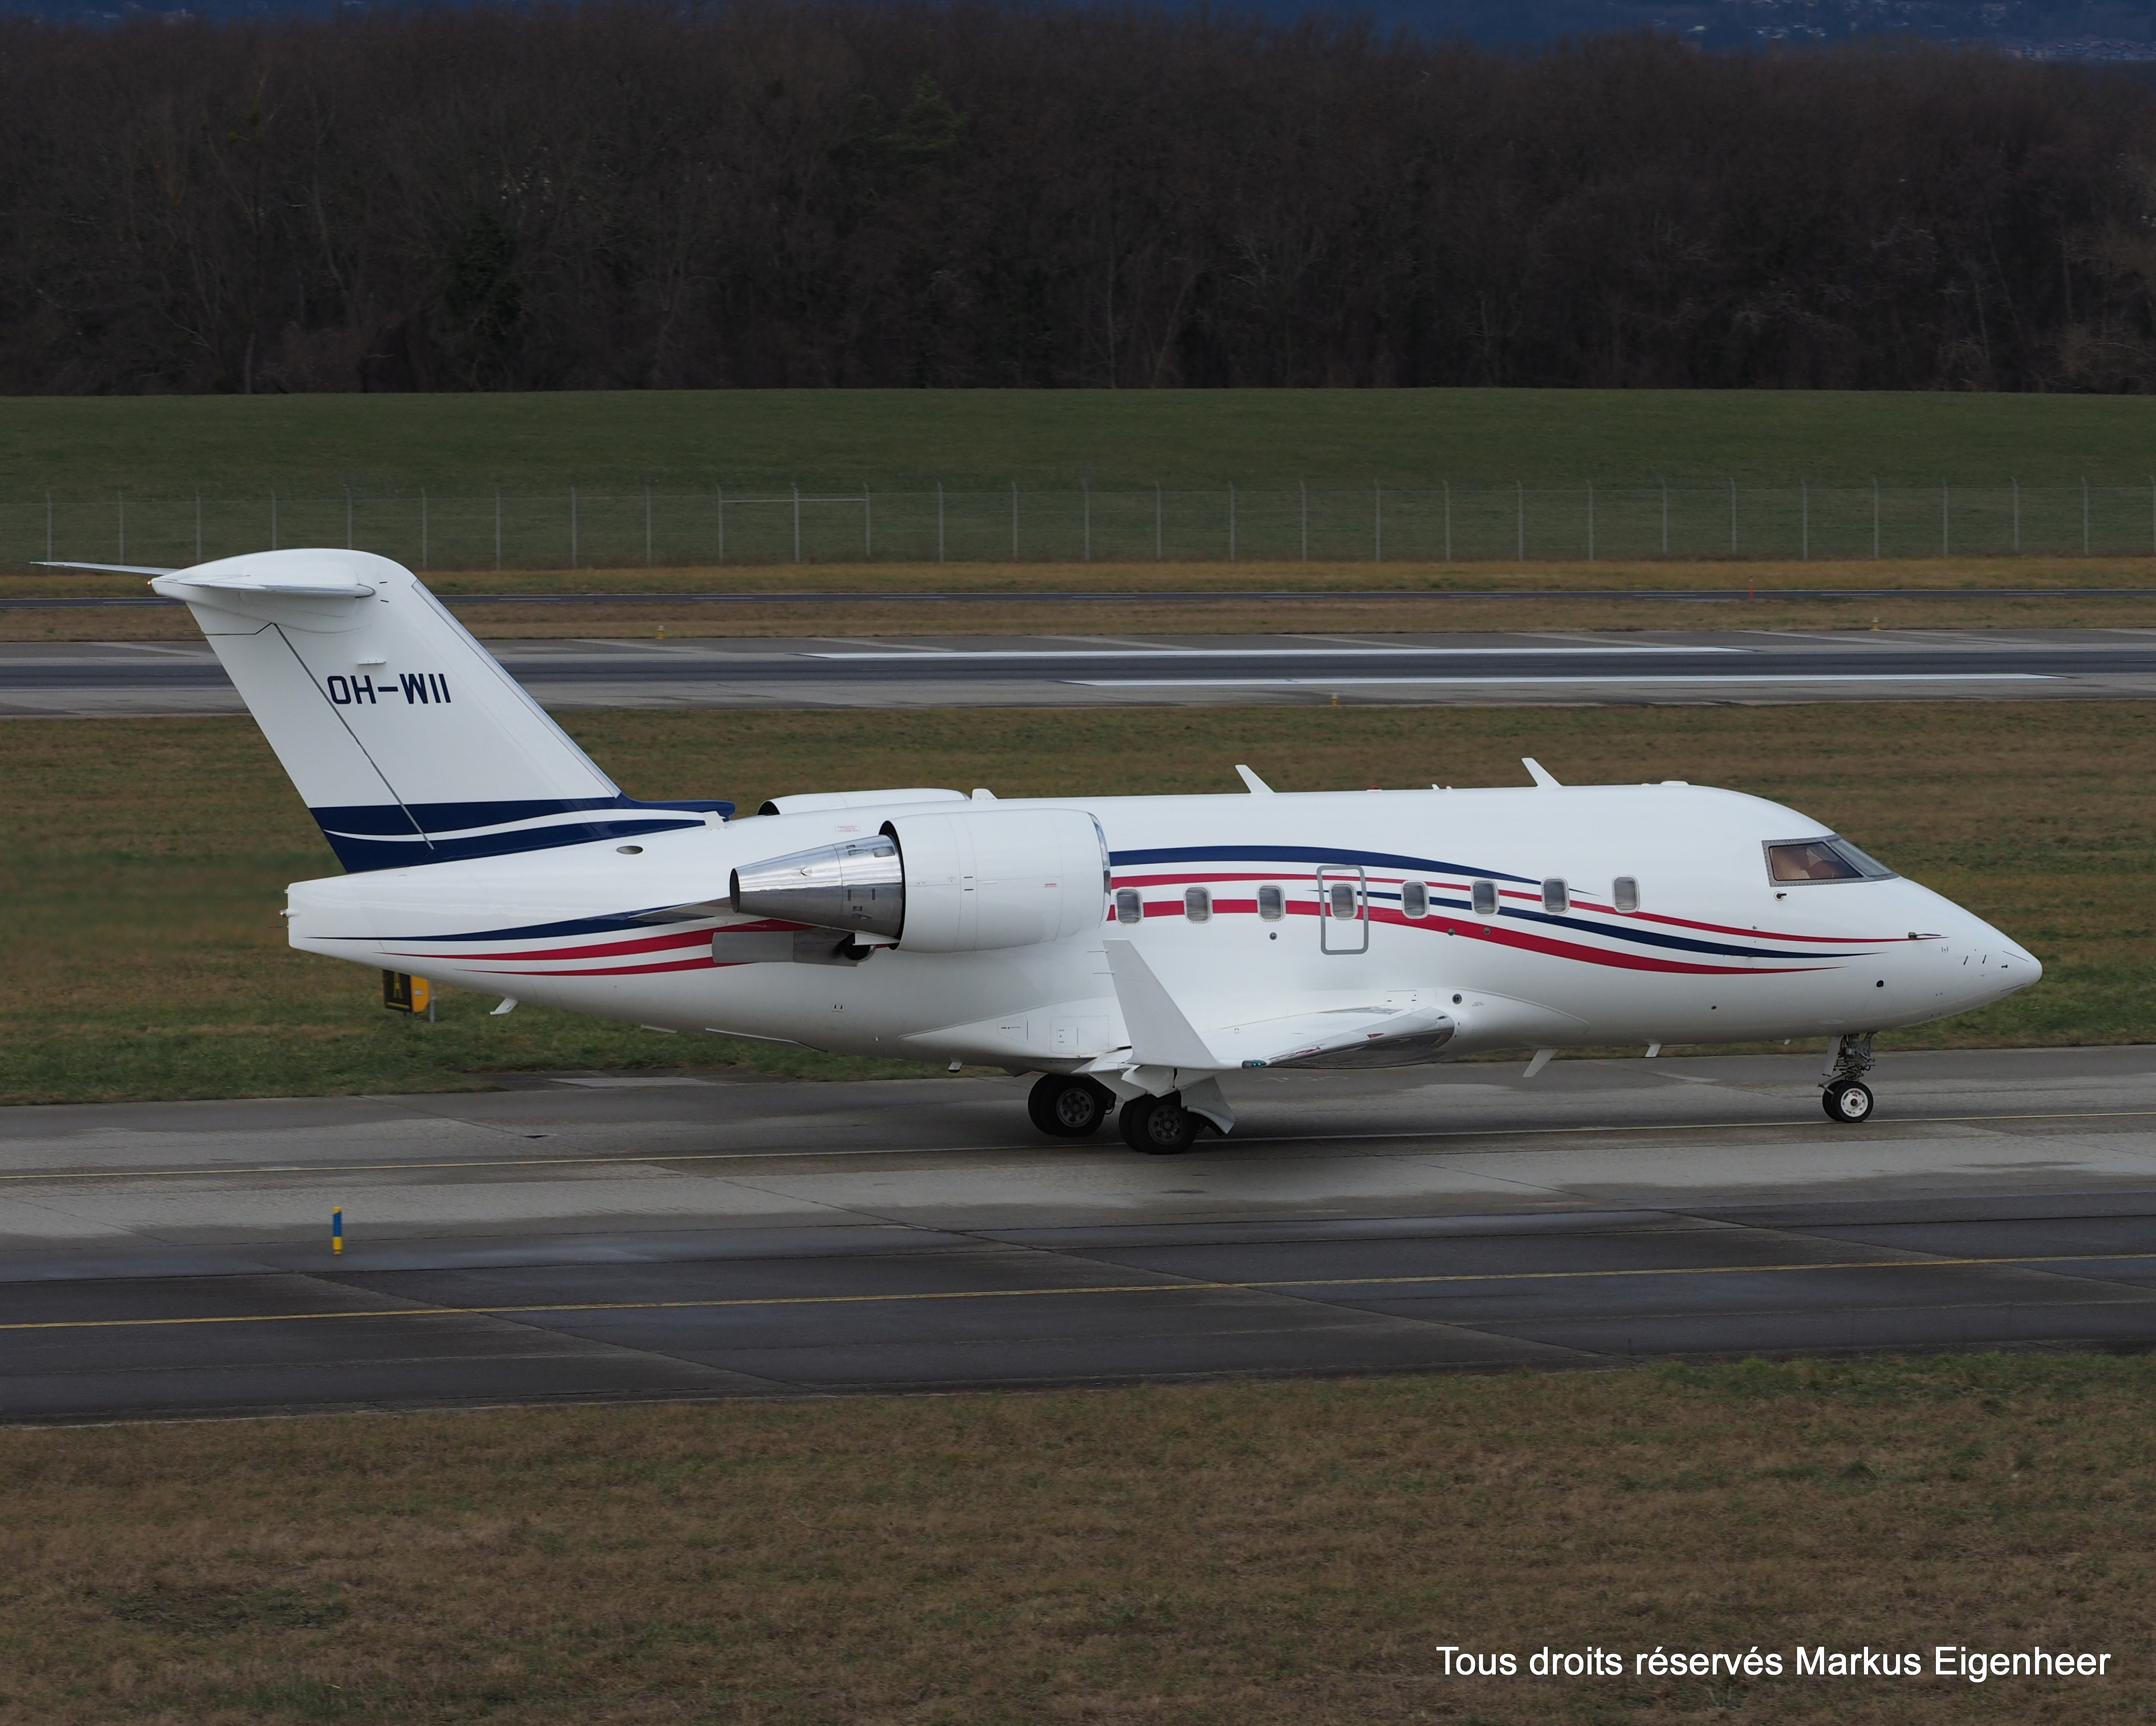 File:OH-WII Bombardier CL-600 2B16 Challenger 604 CL60 - JEF (